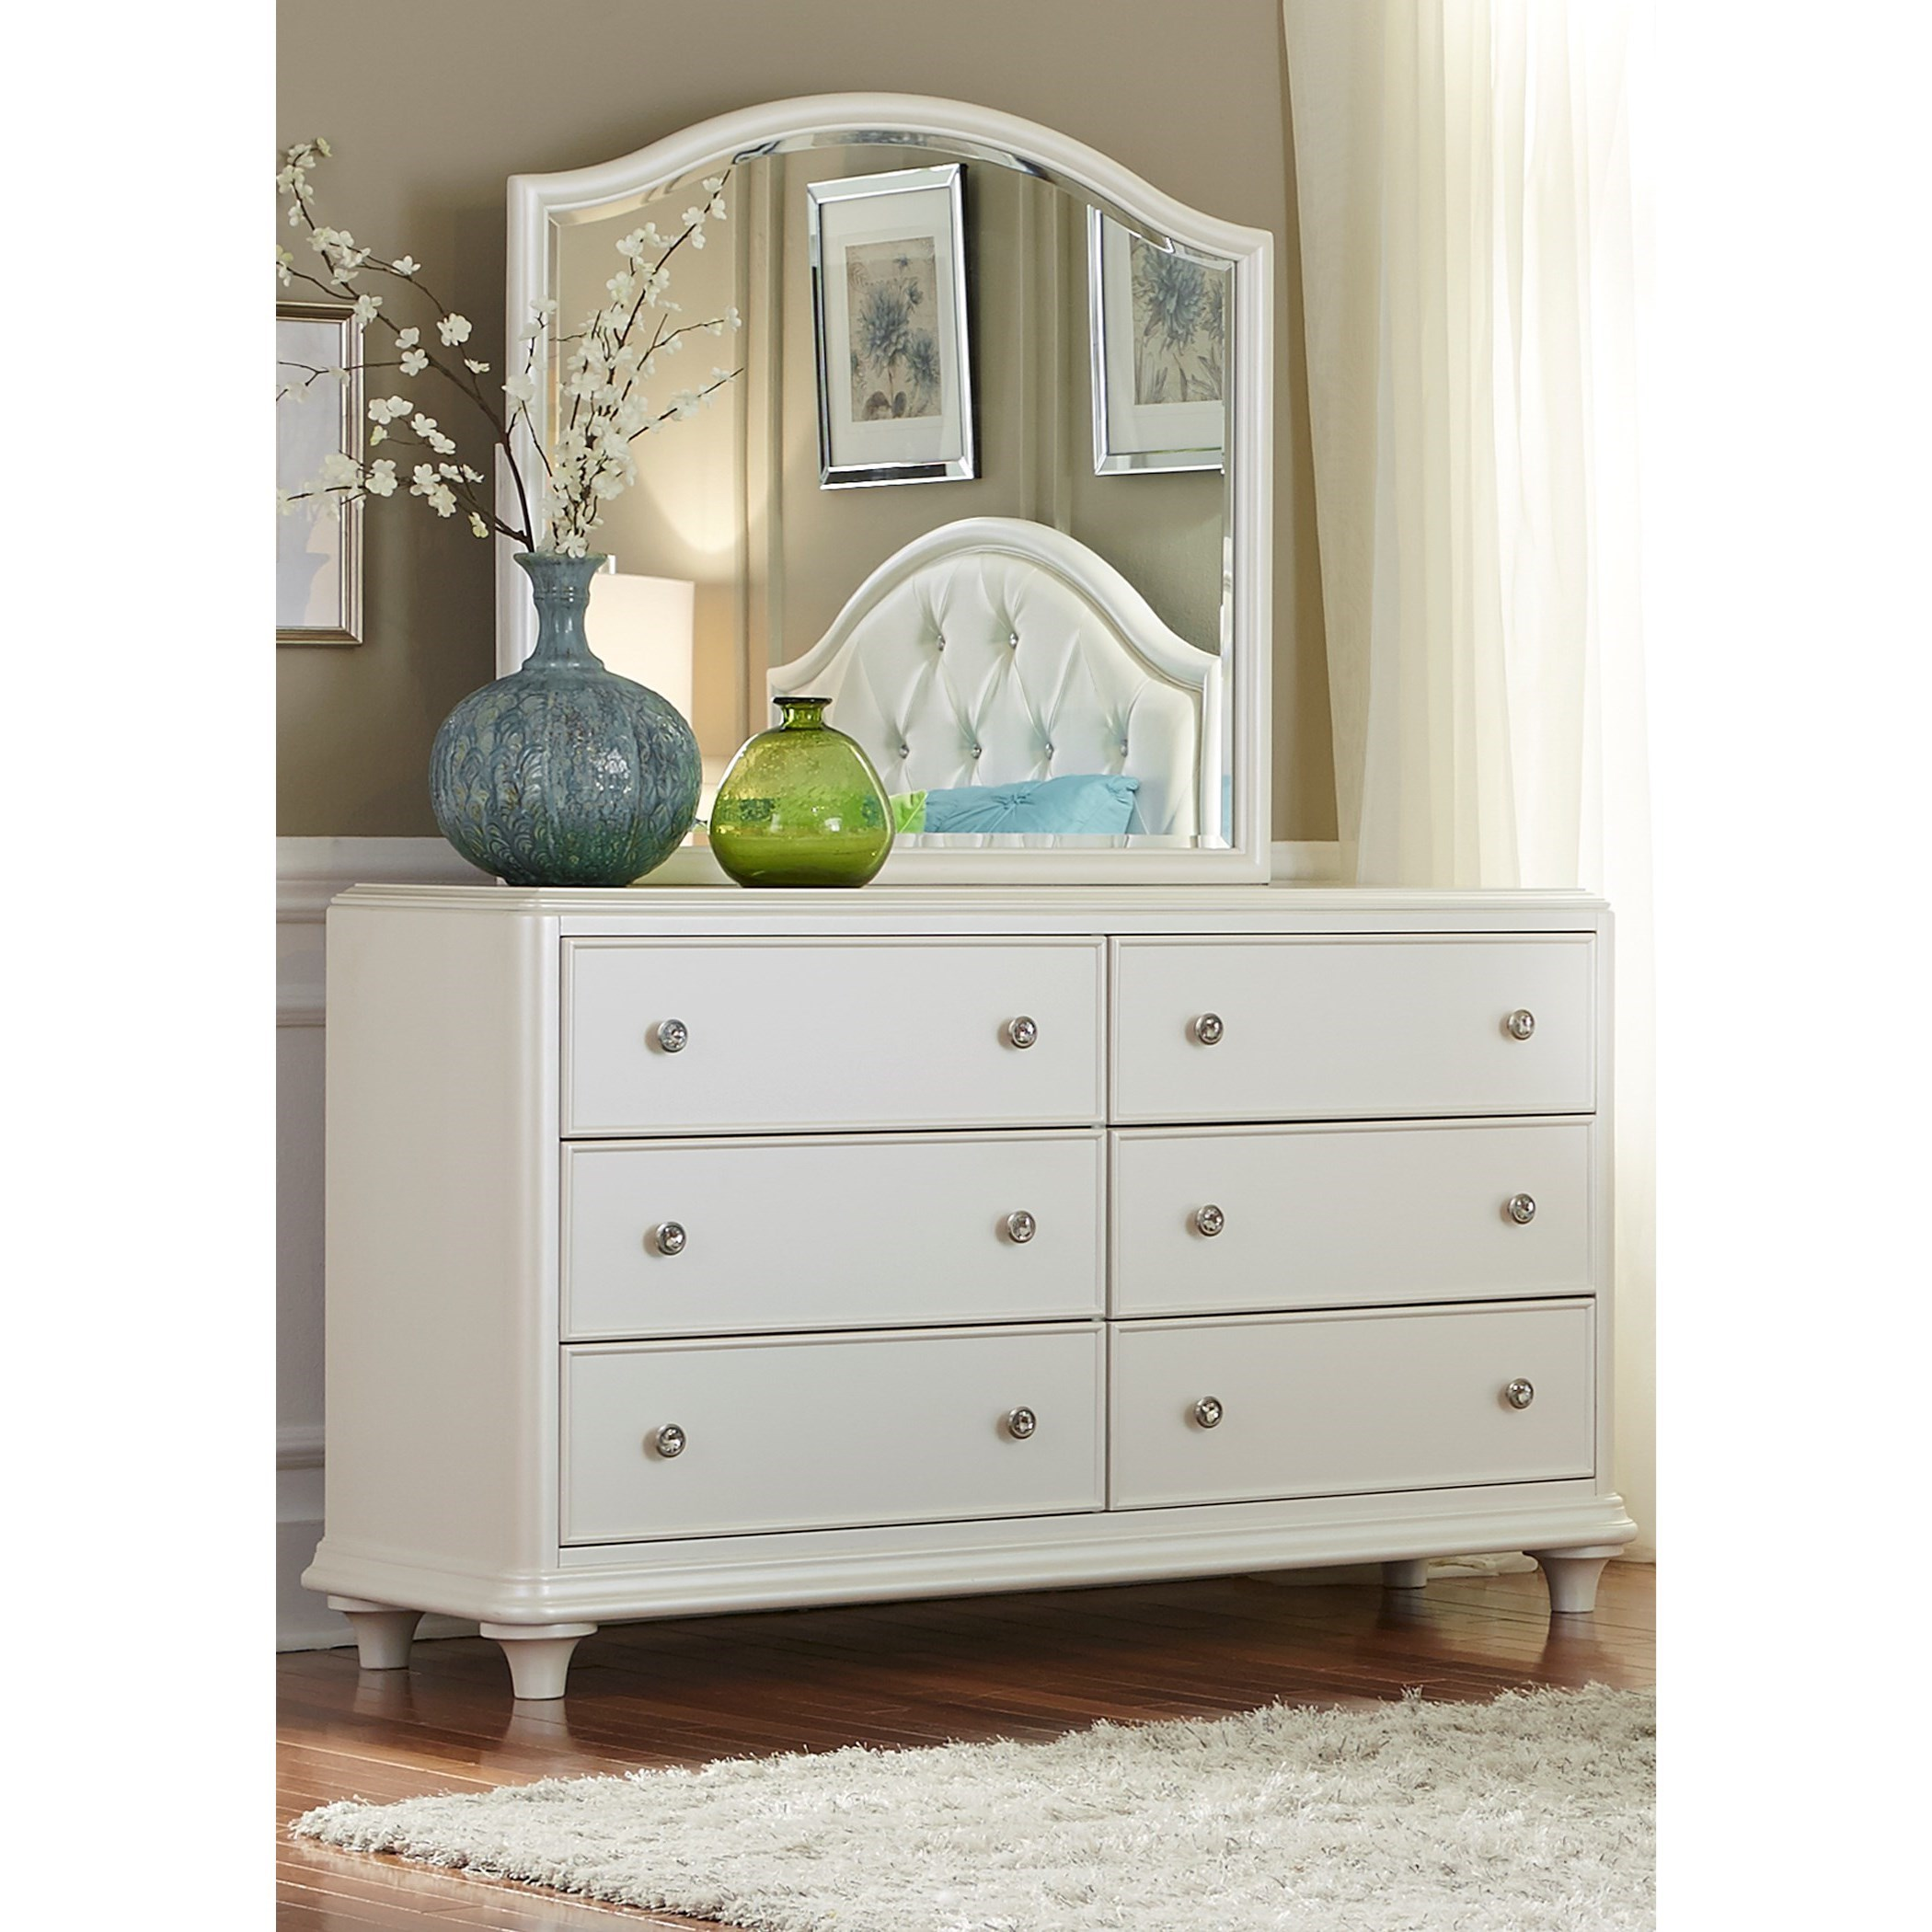 Contemporary Glam 6 Drawer Dresser and Mirror